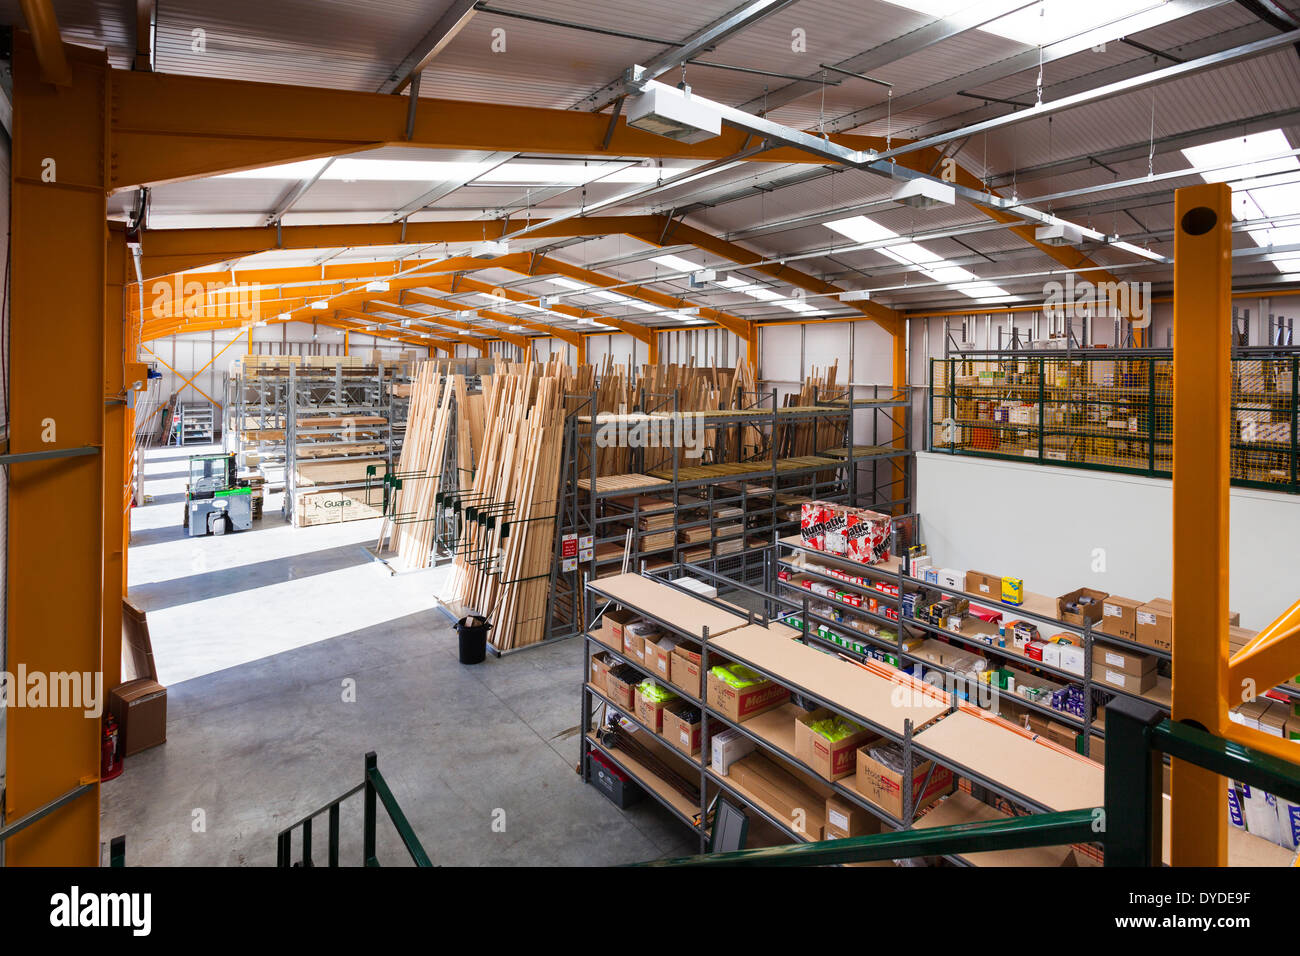 Builders merchant stock photos builders merchant stock images warehouse interior of travis perkins builders merchants stock image baanklon Choice Image